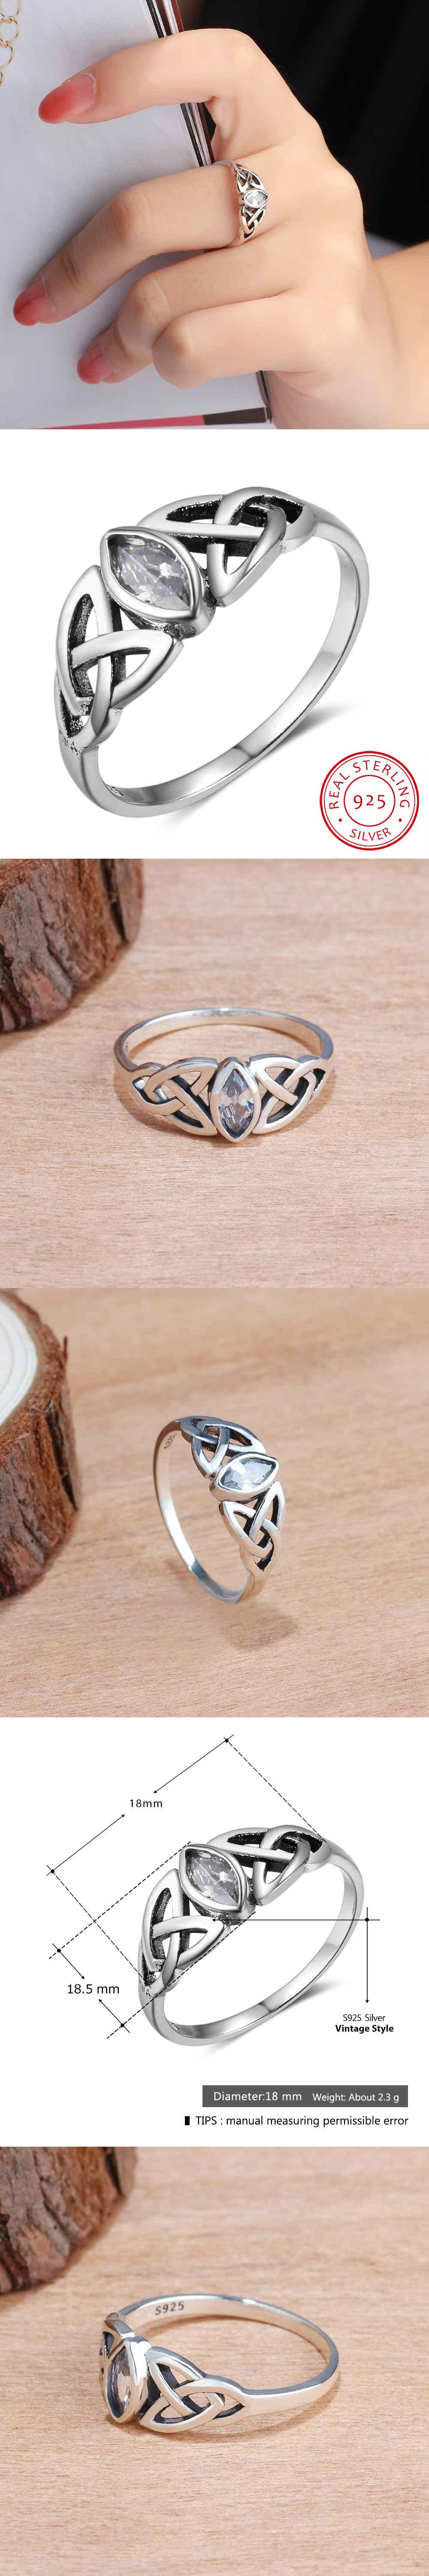 collections jewelry rings stud symbol mine earring silver sam of cases